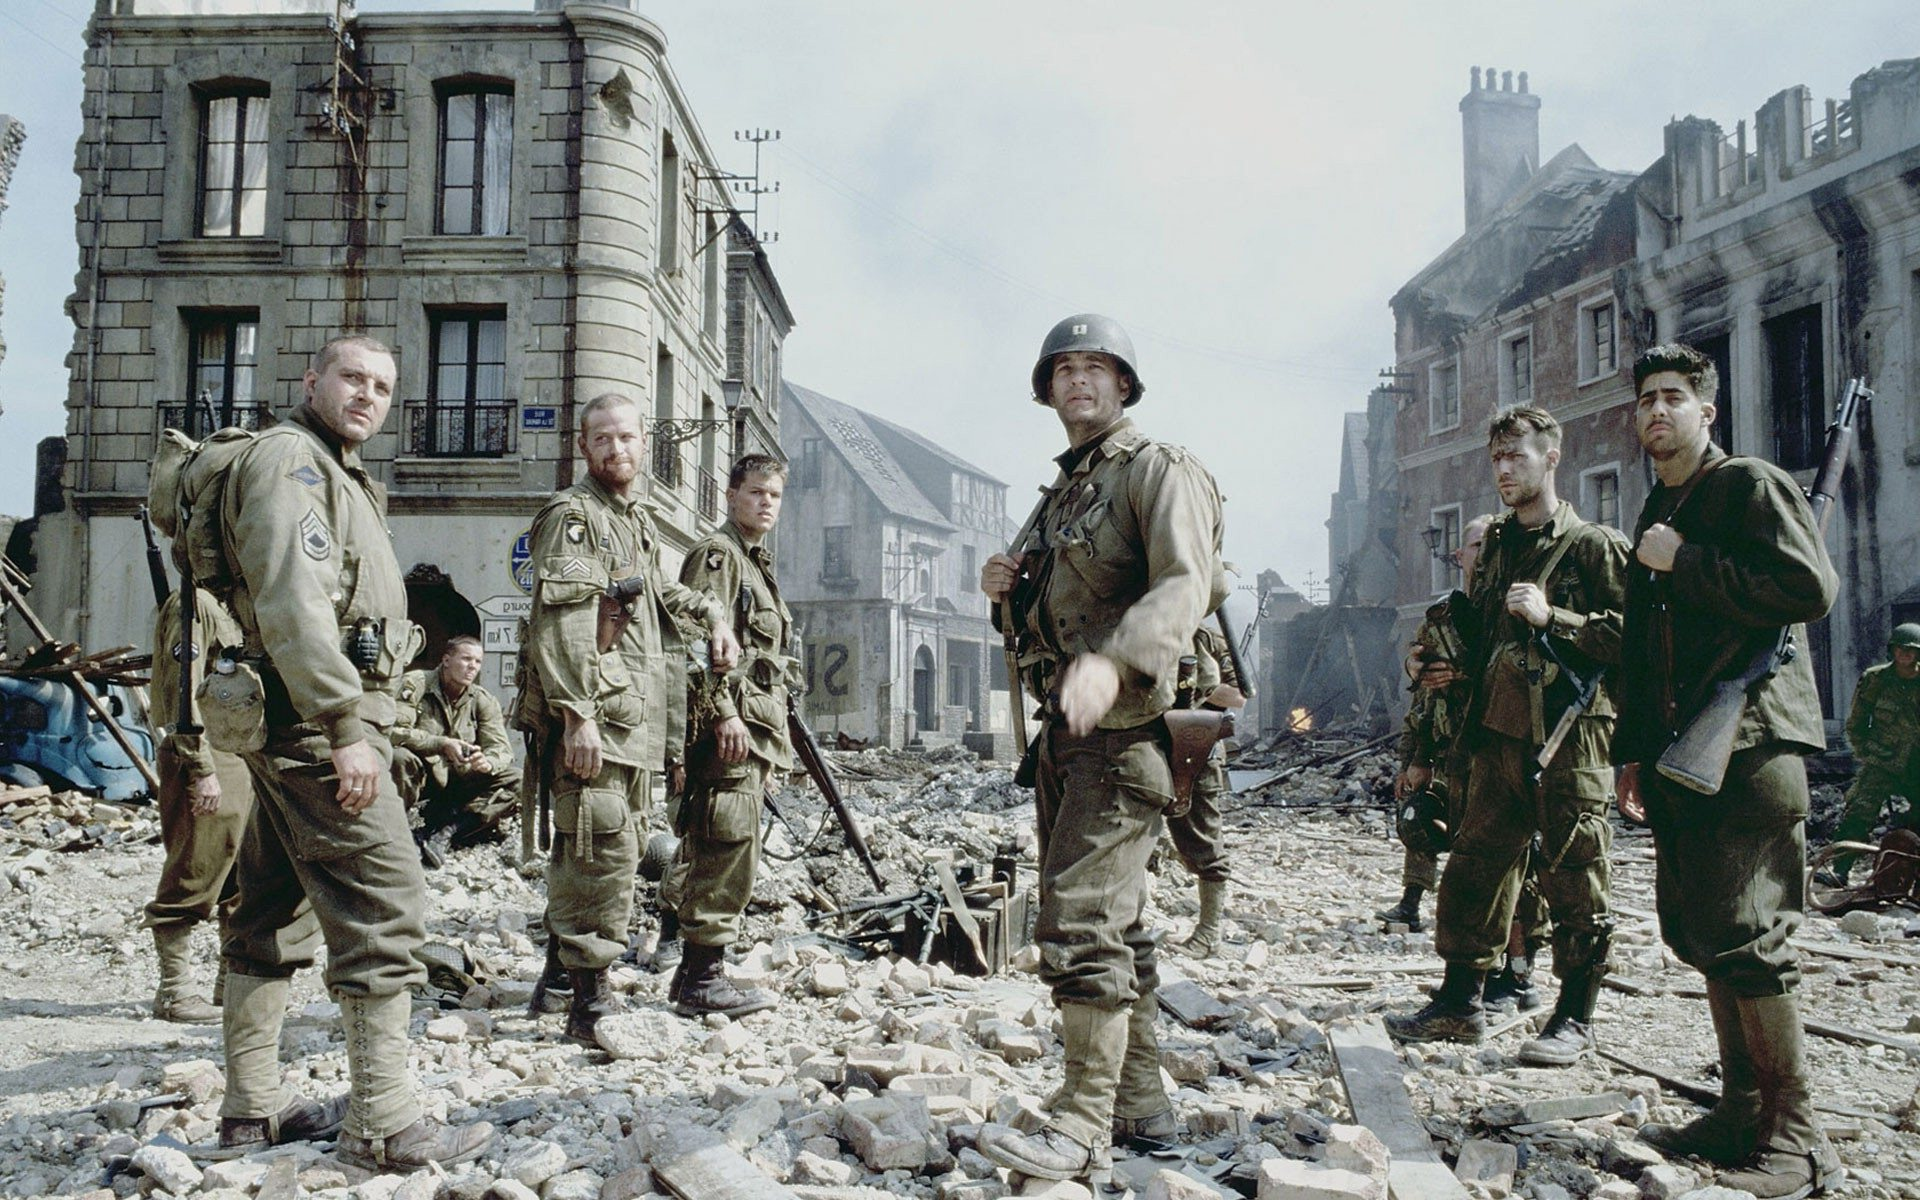 Dunkirk' PG-13 Rating is Nolan's Boldest Move Yet